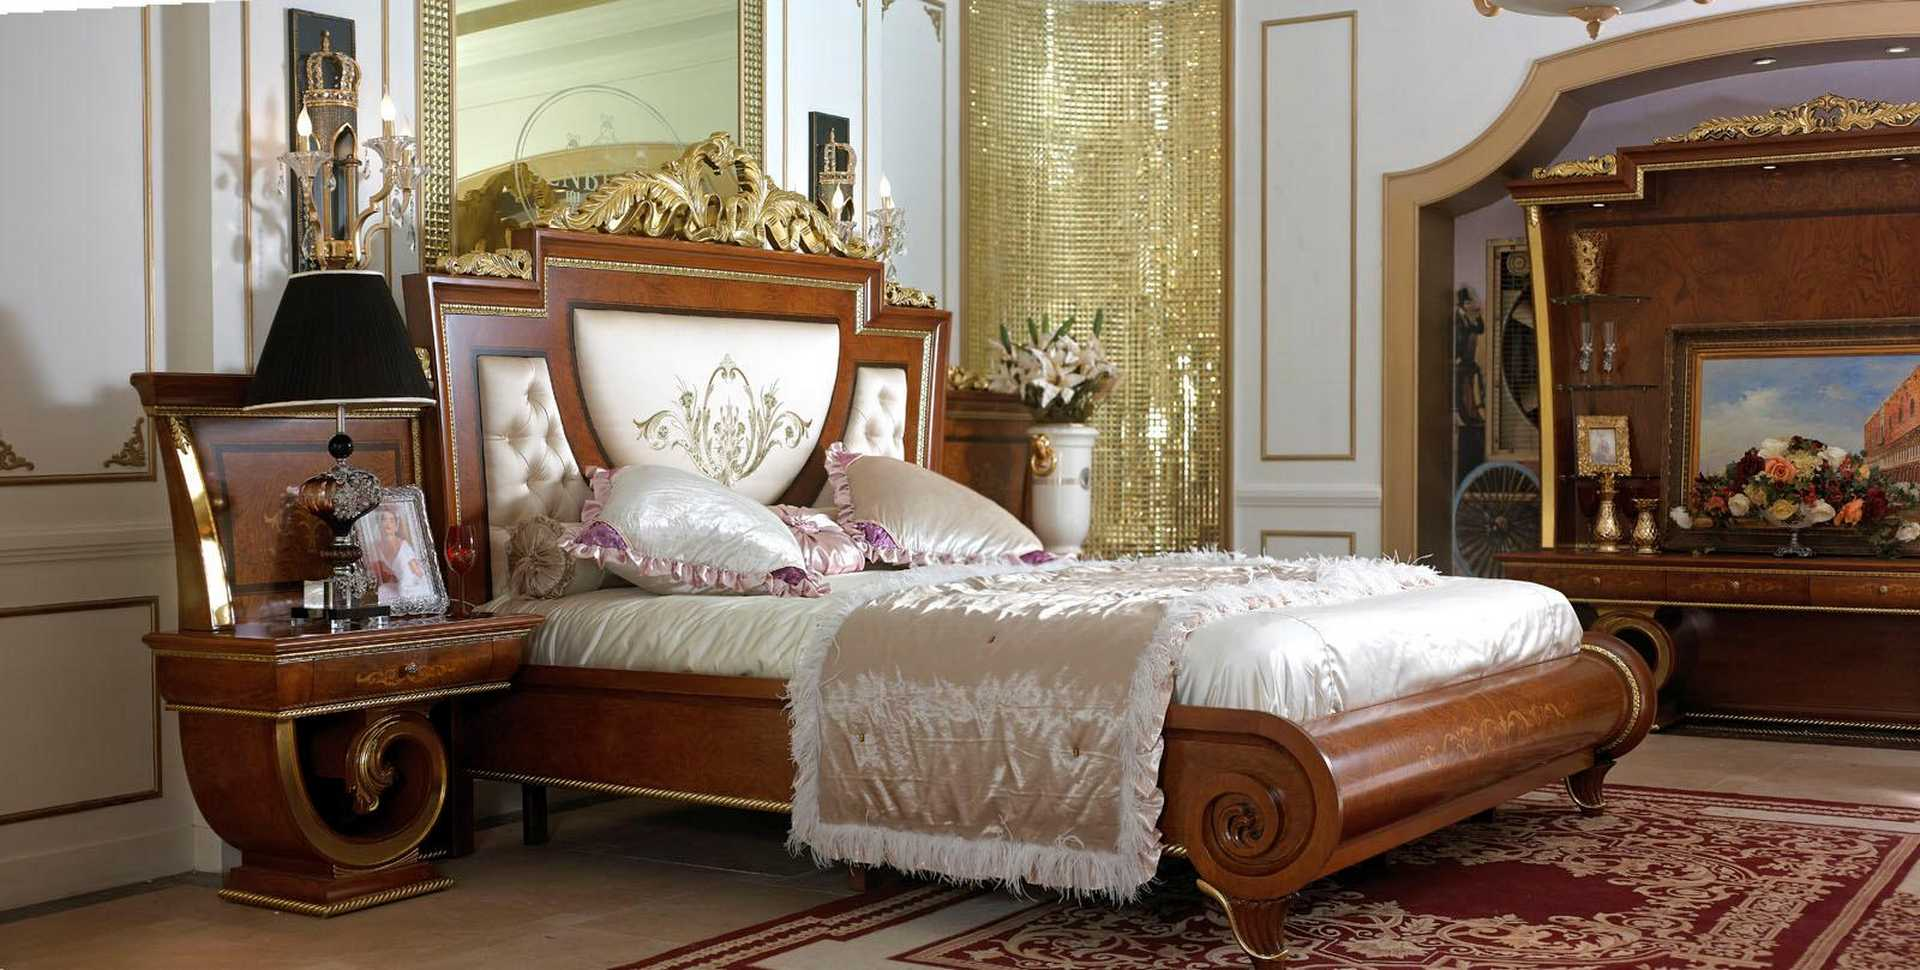 Amazing Luxury Bedroom Furniture Sets luxury bedroom furniture sets